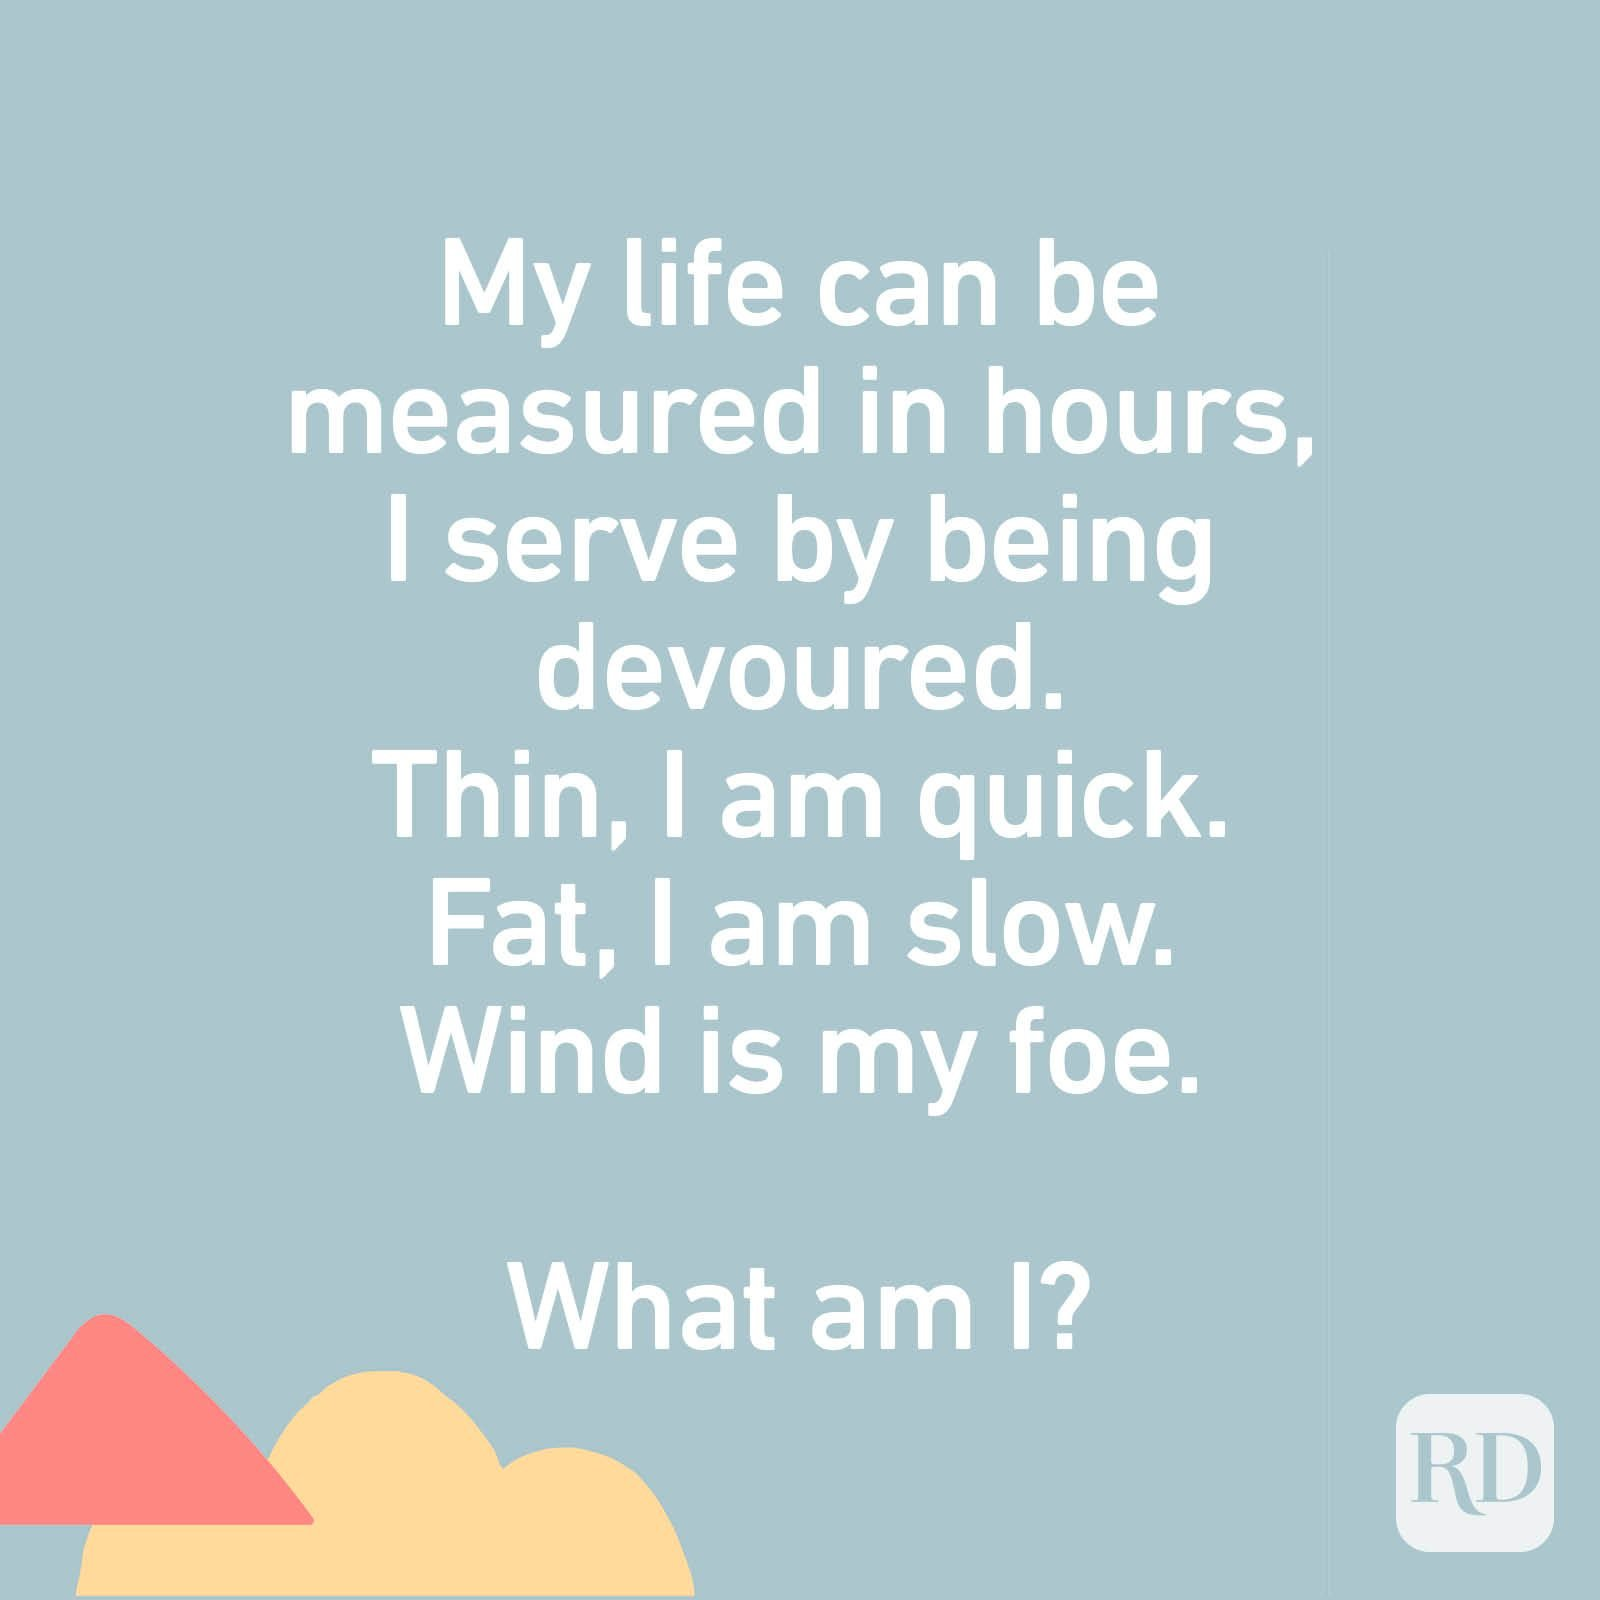 My life can be measured in hours, I serve by being devoured. Thin, I am quick. Fat, I am slow. Wind is my foe. What am I?